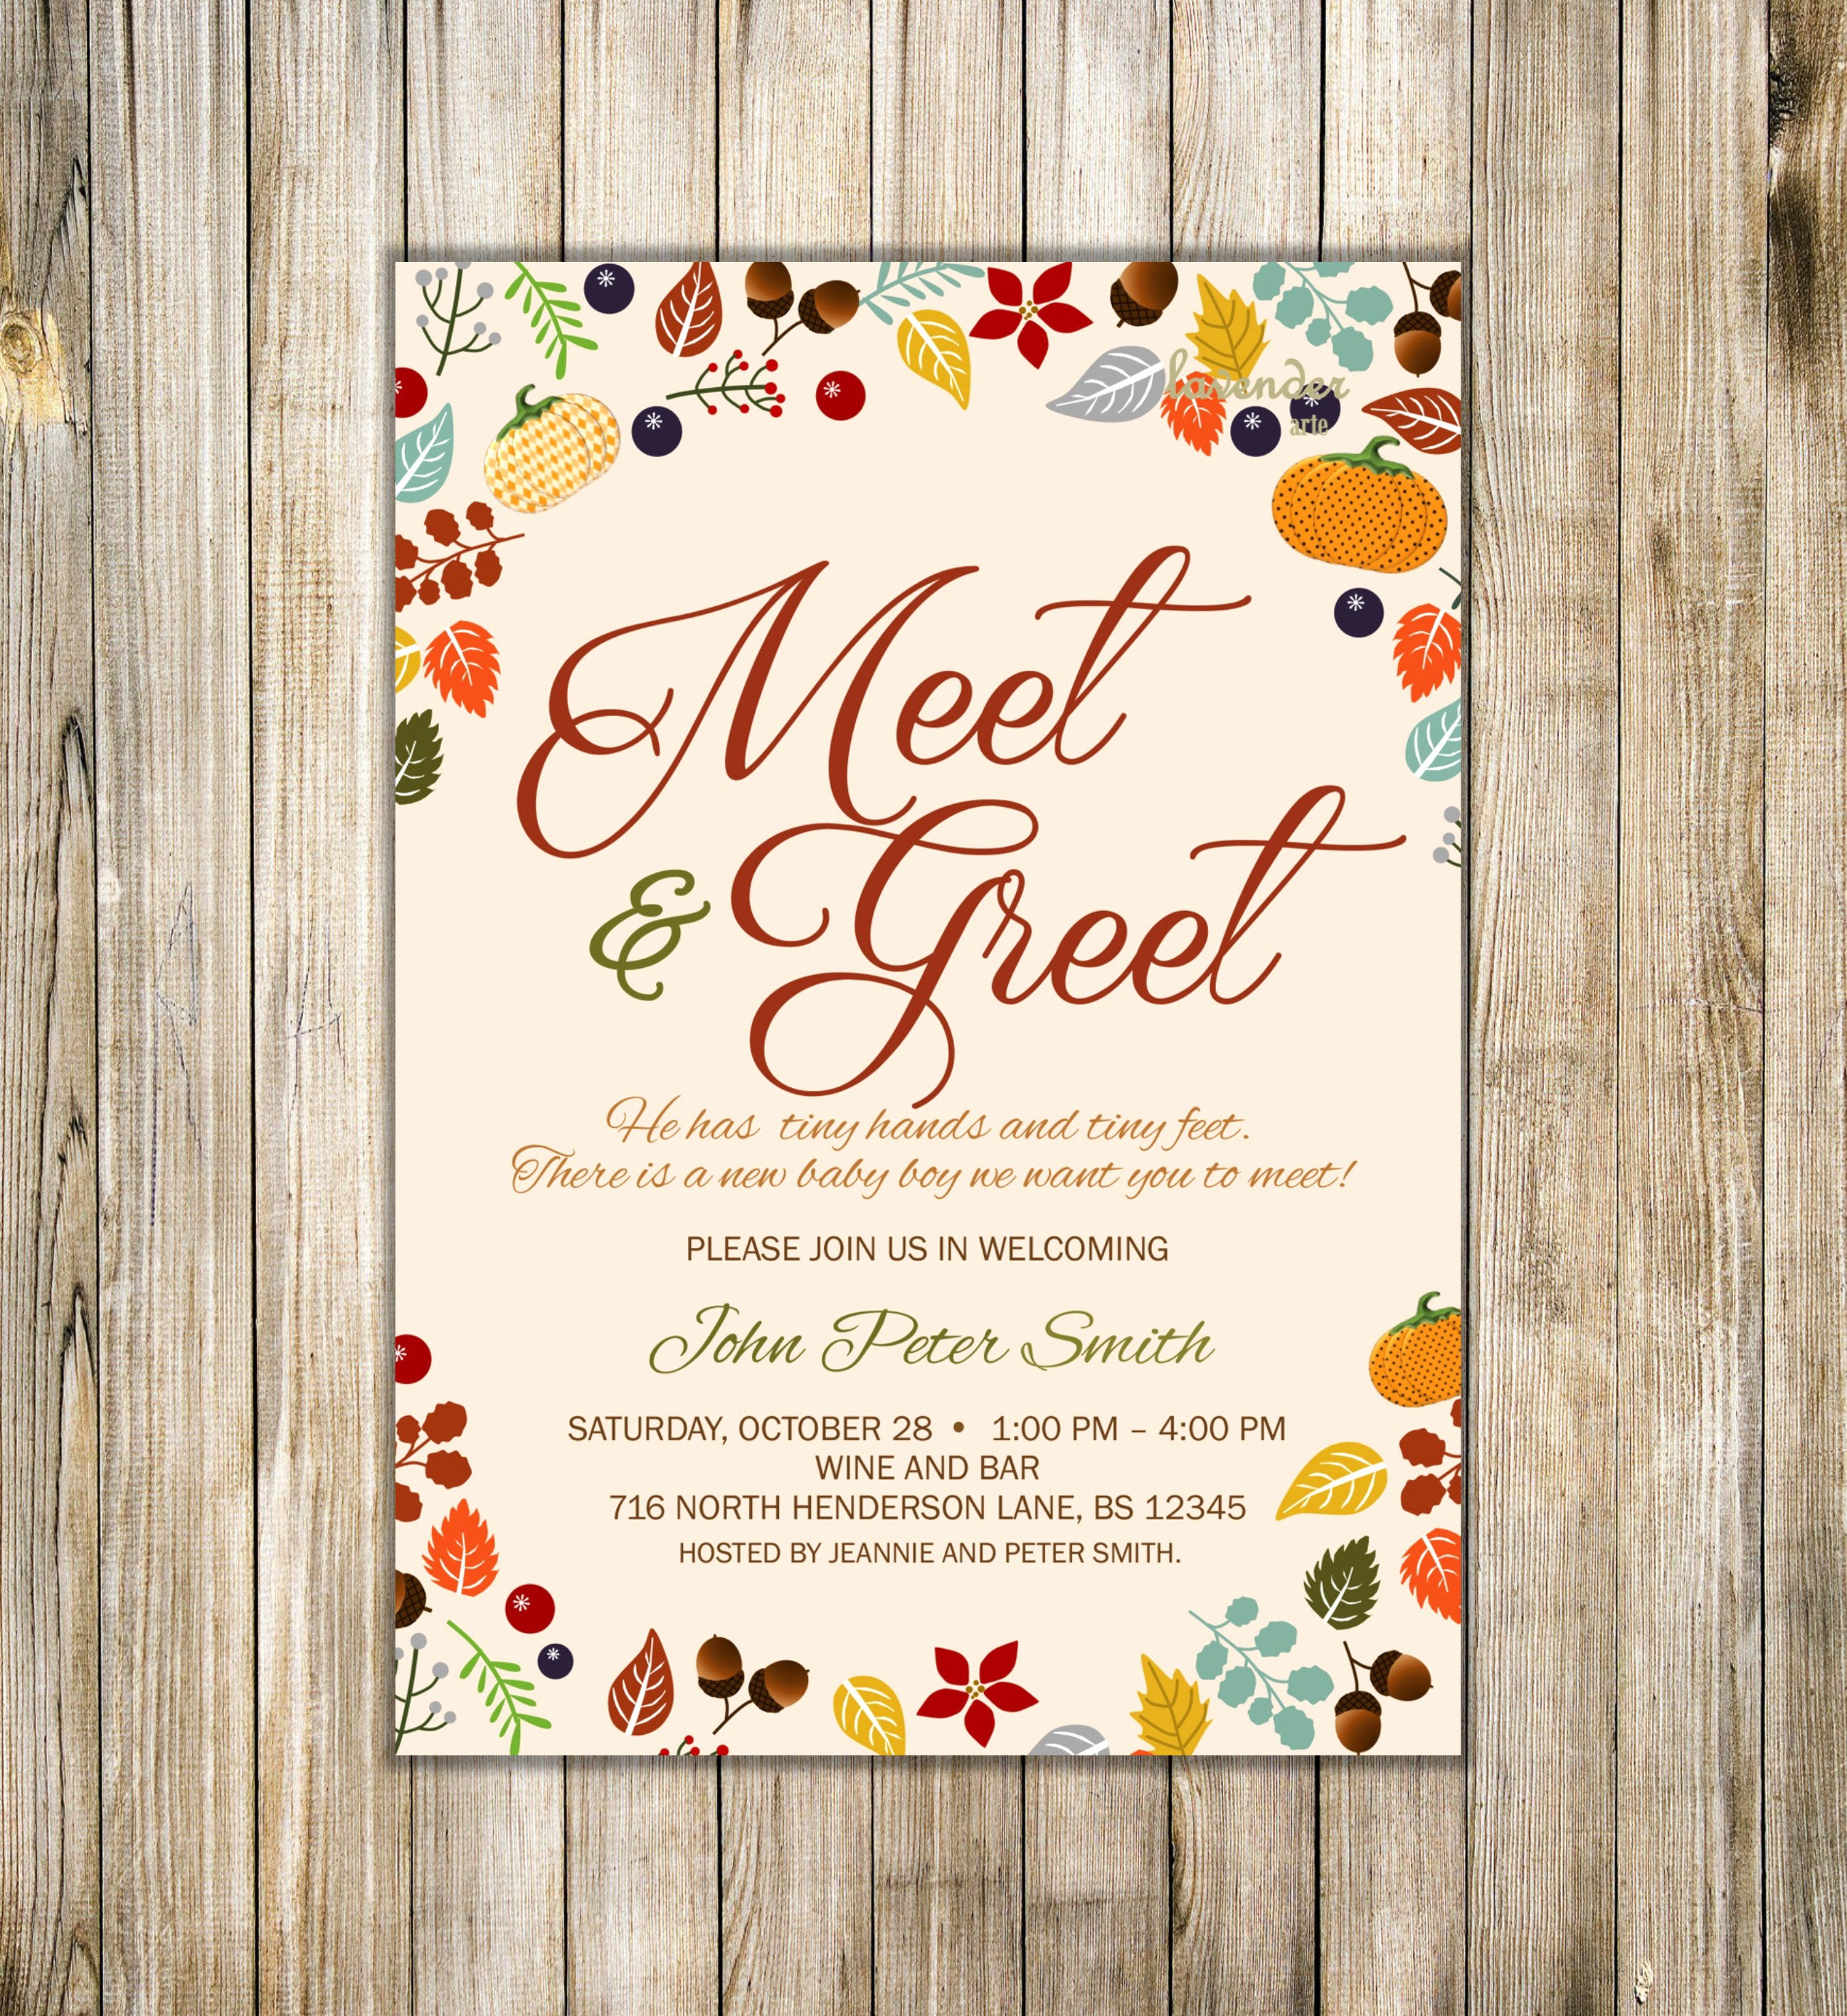 Meet and Greet Invitation Templates Awesome Fall Meet and Greet Invitation Fall Meet the Baby Invite Sip